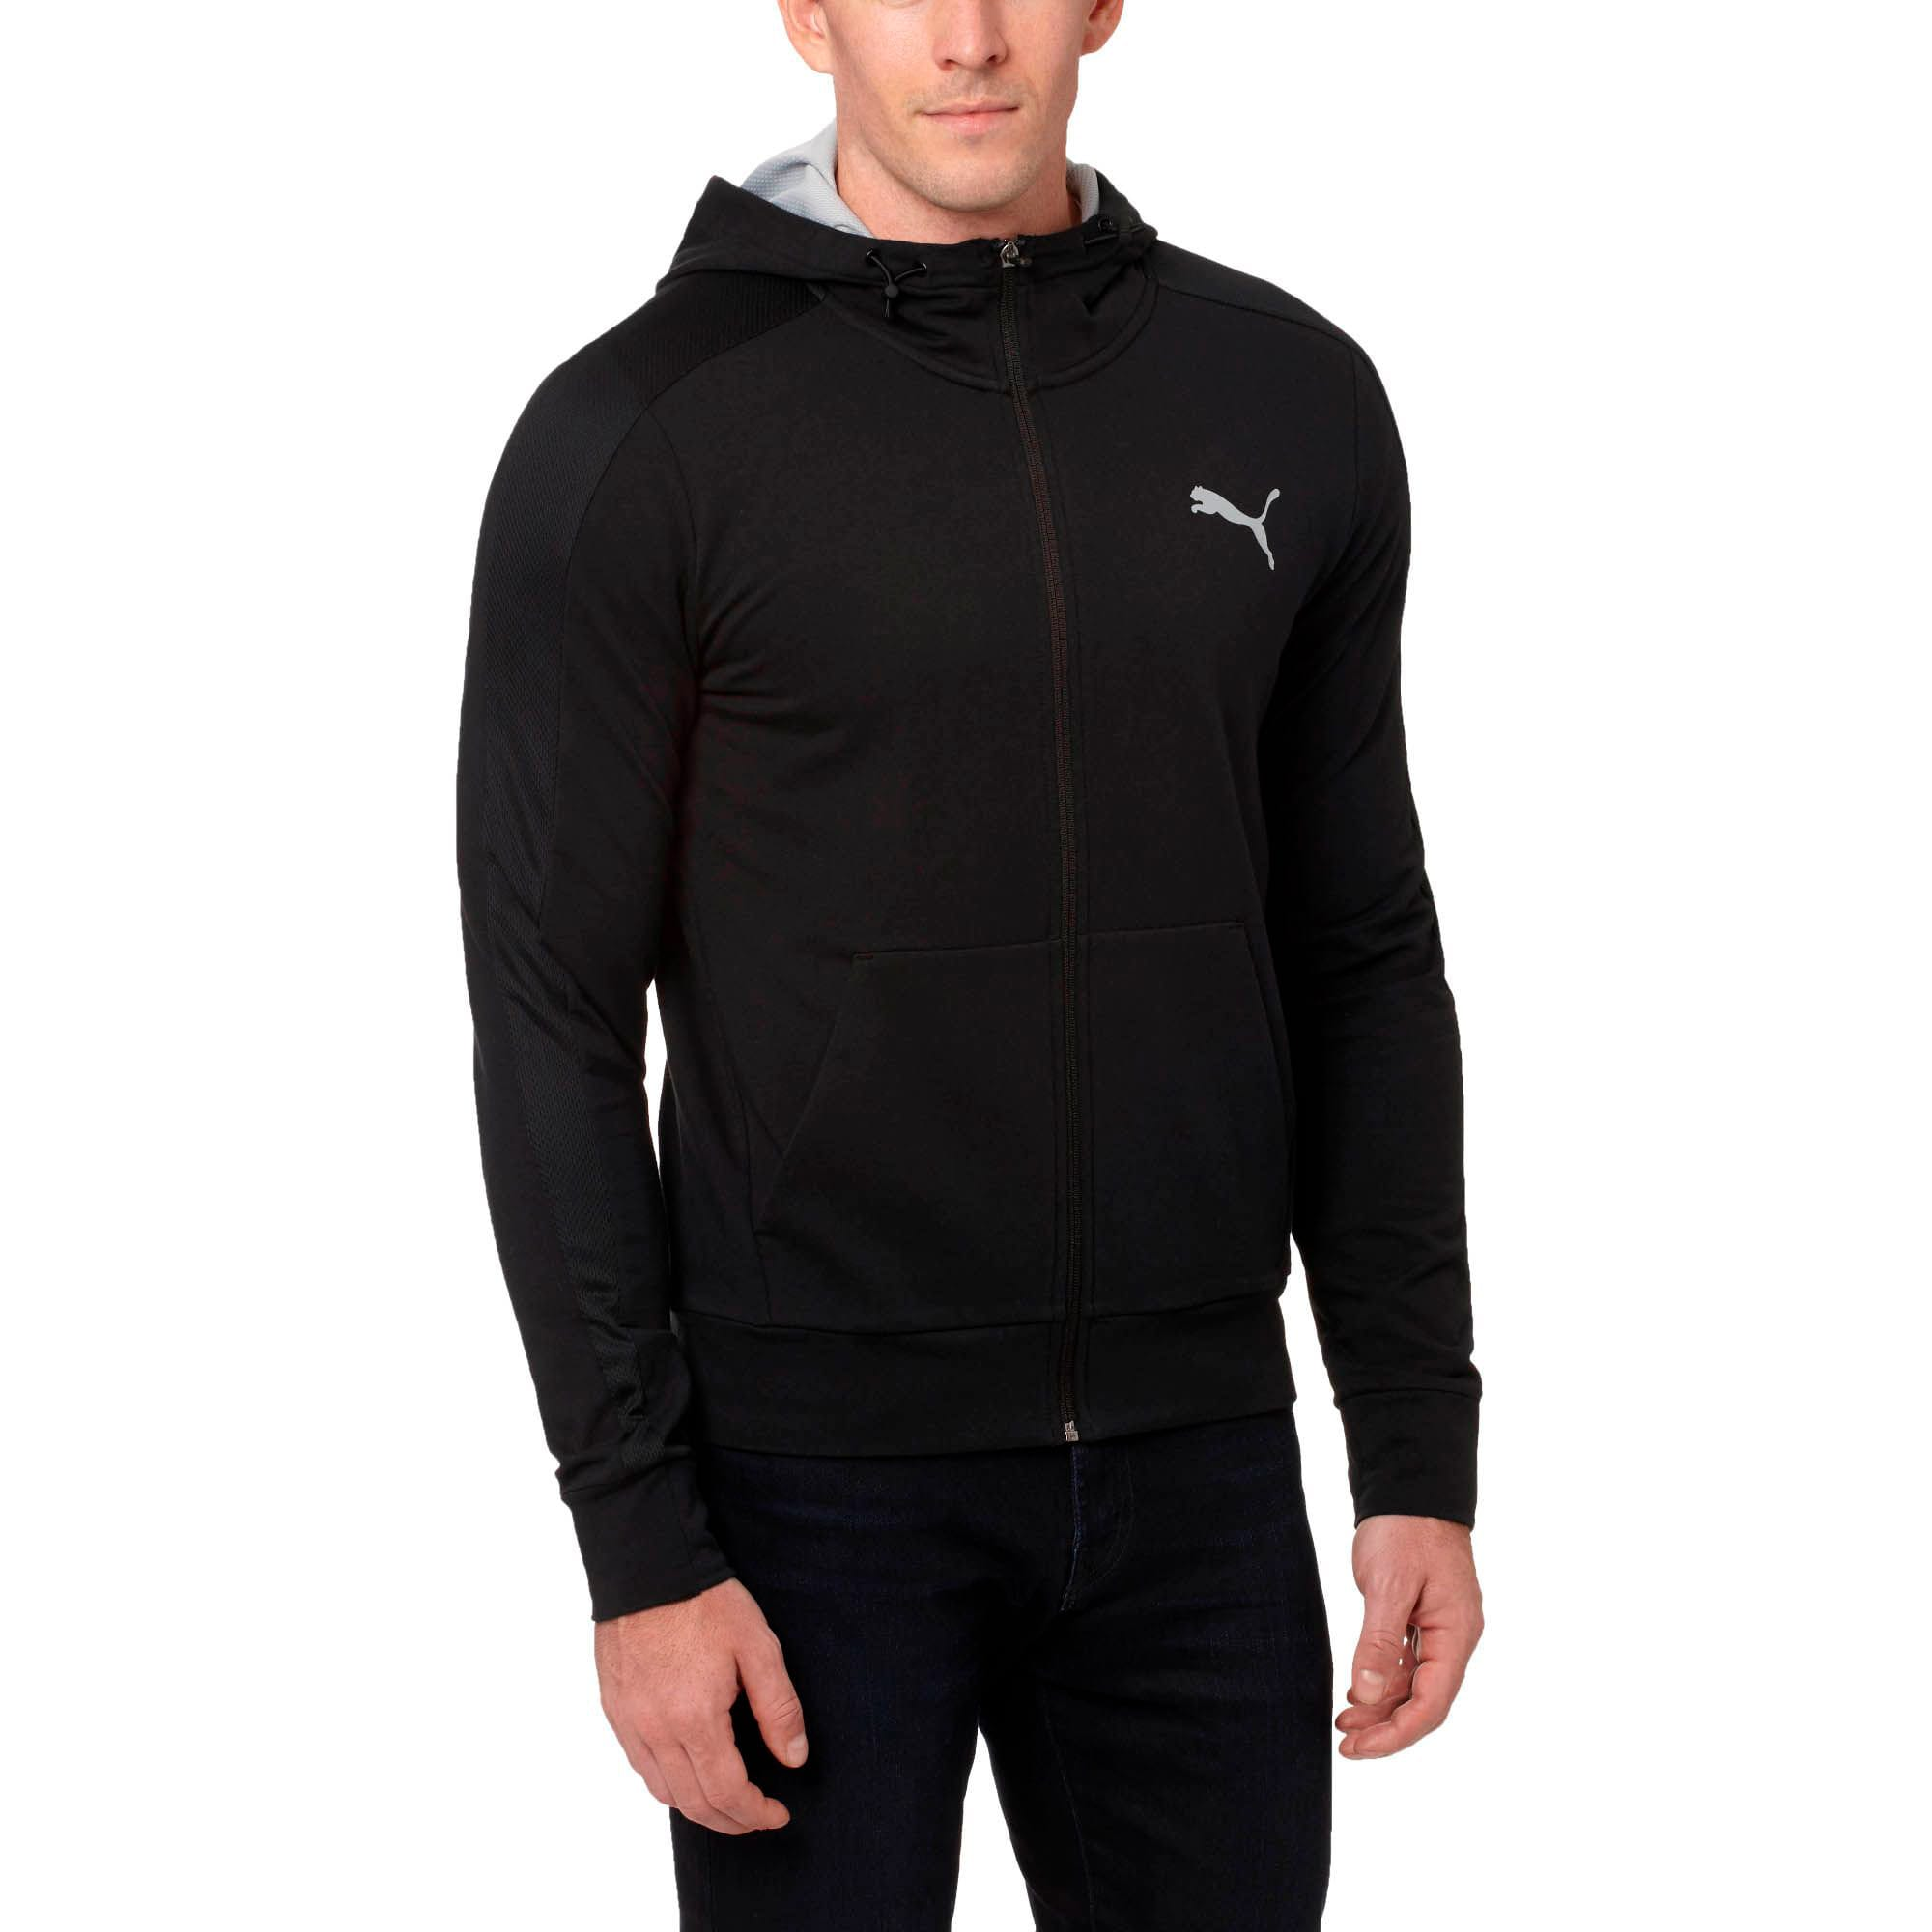 Thumbnail 2 of StretchLite Zip-Up Hoodie, Cotton Black, medium